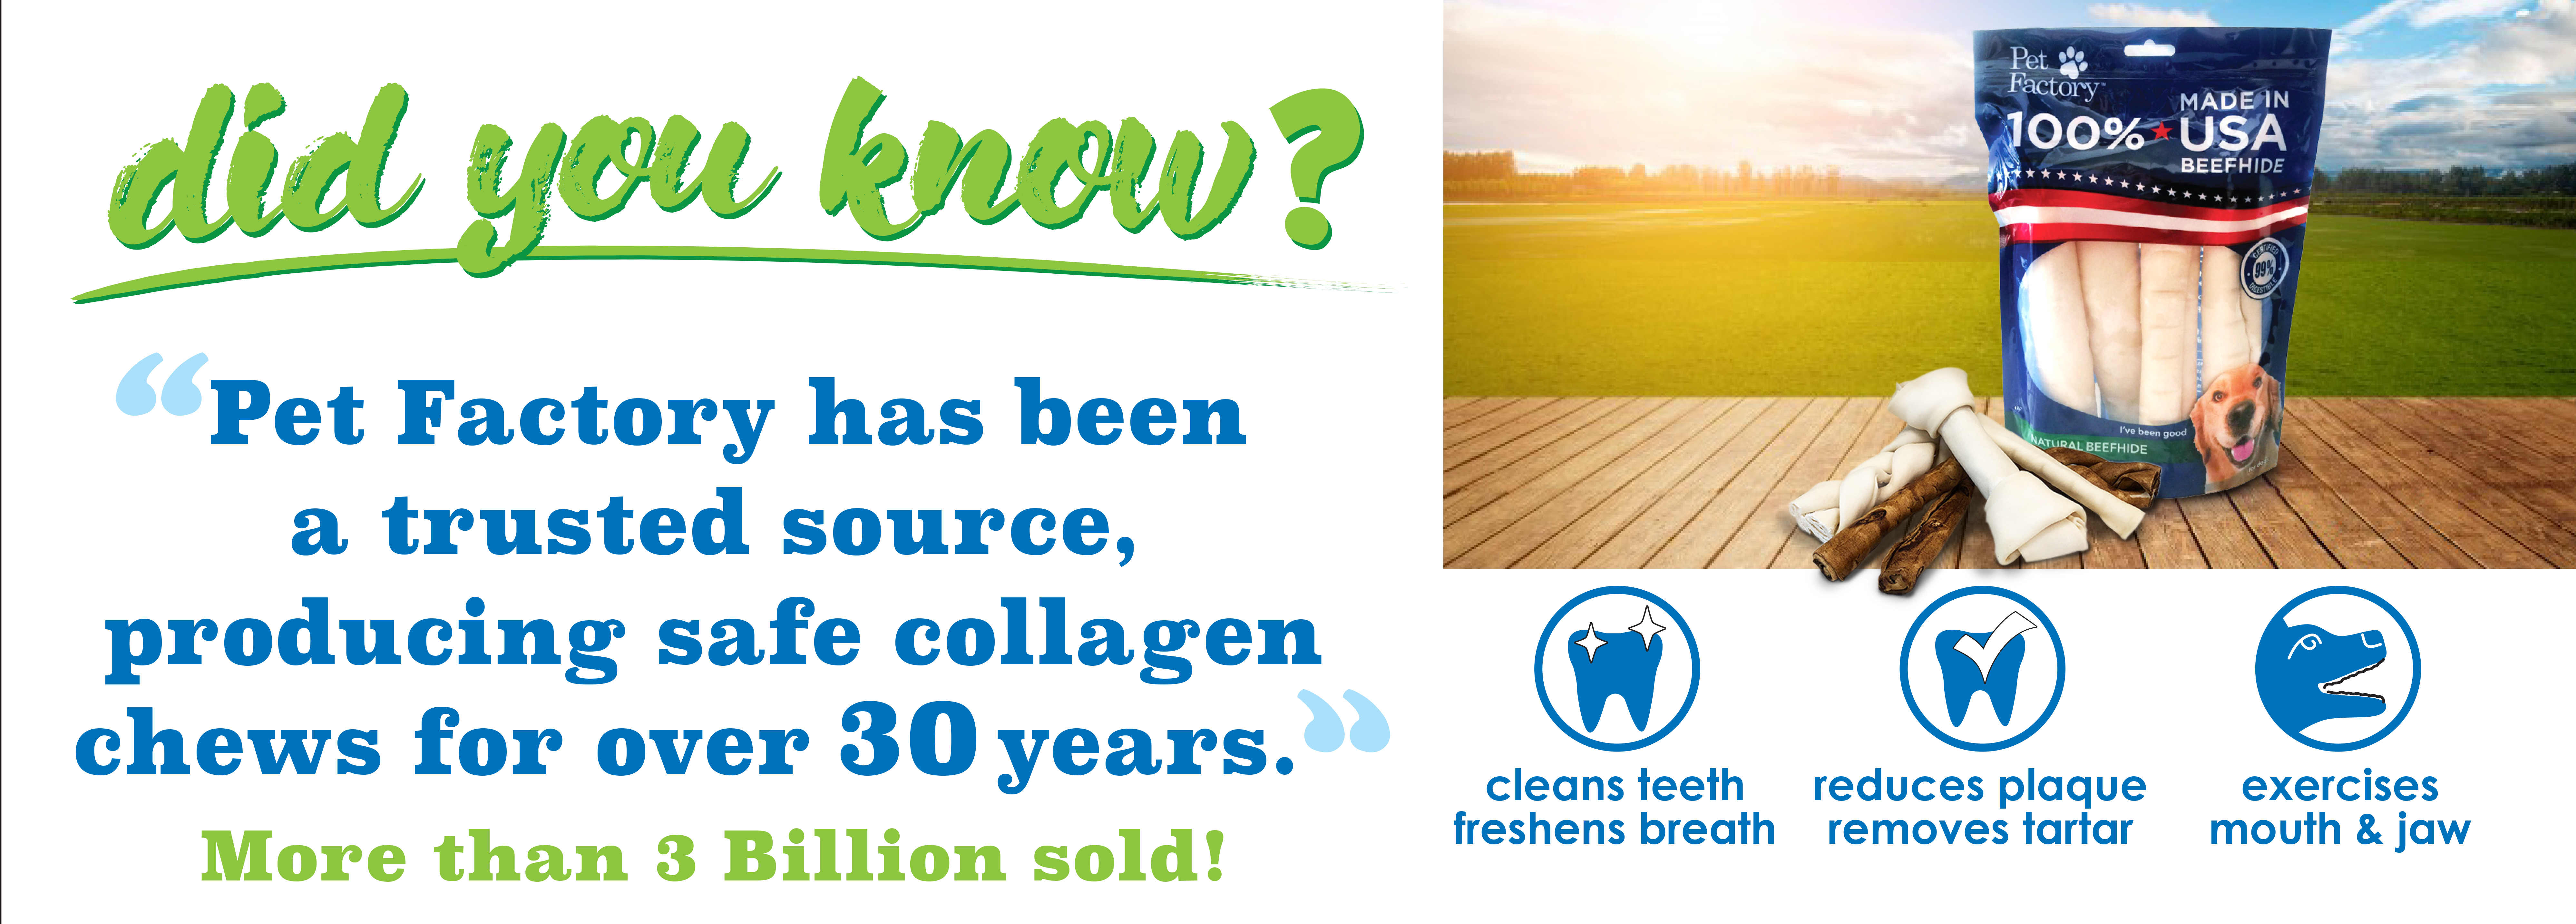 Did You Know_ Pet Factory number 1 source of callagen chews